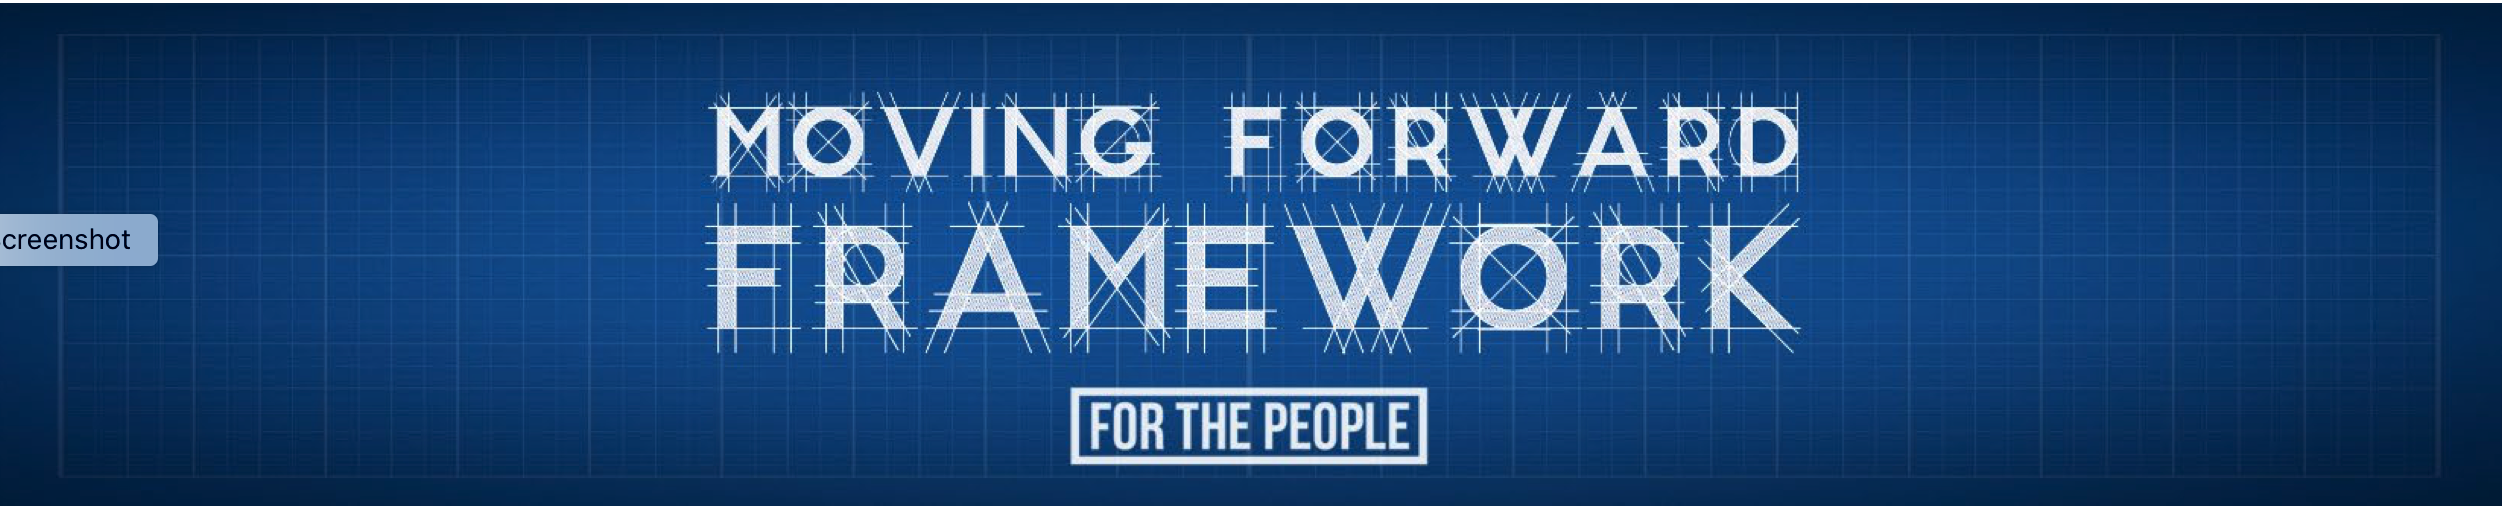 Moving Forward Framework: For the People